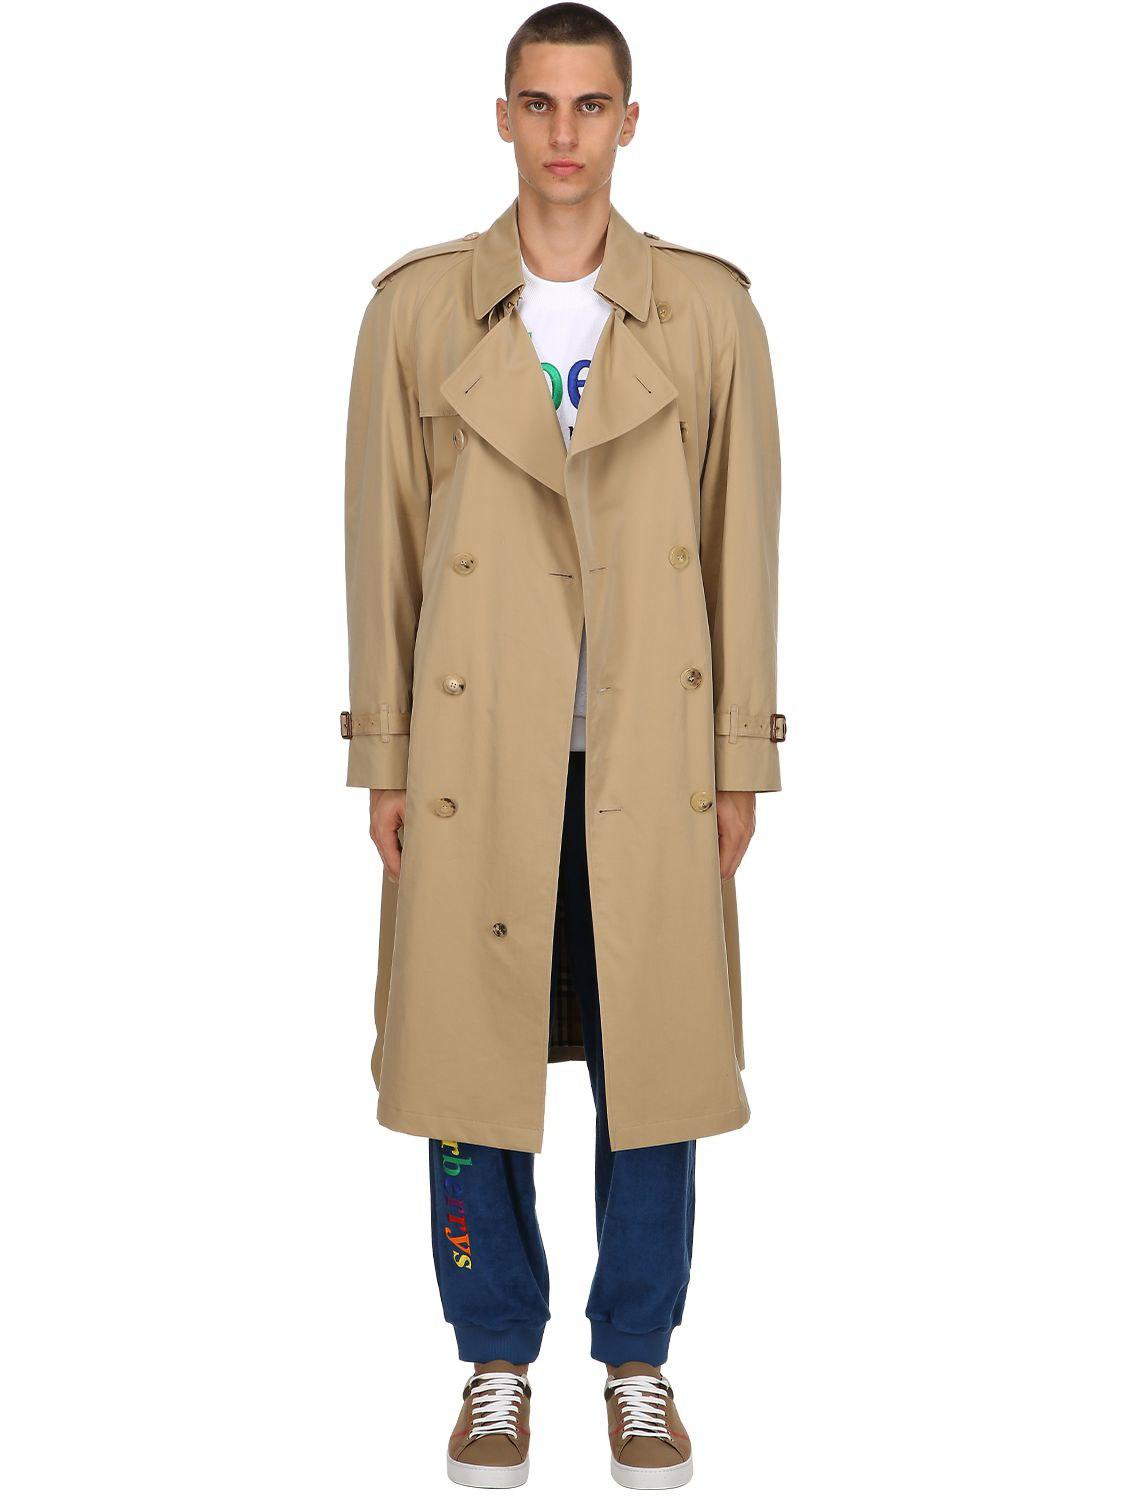 375d9af59 Burberry Westminster Rainbow Check Trench Coat in Natural for Men - Lyst